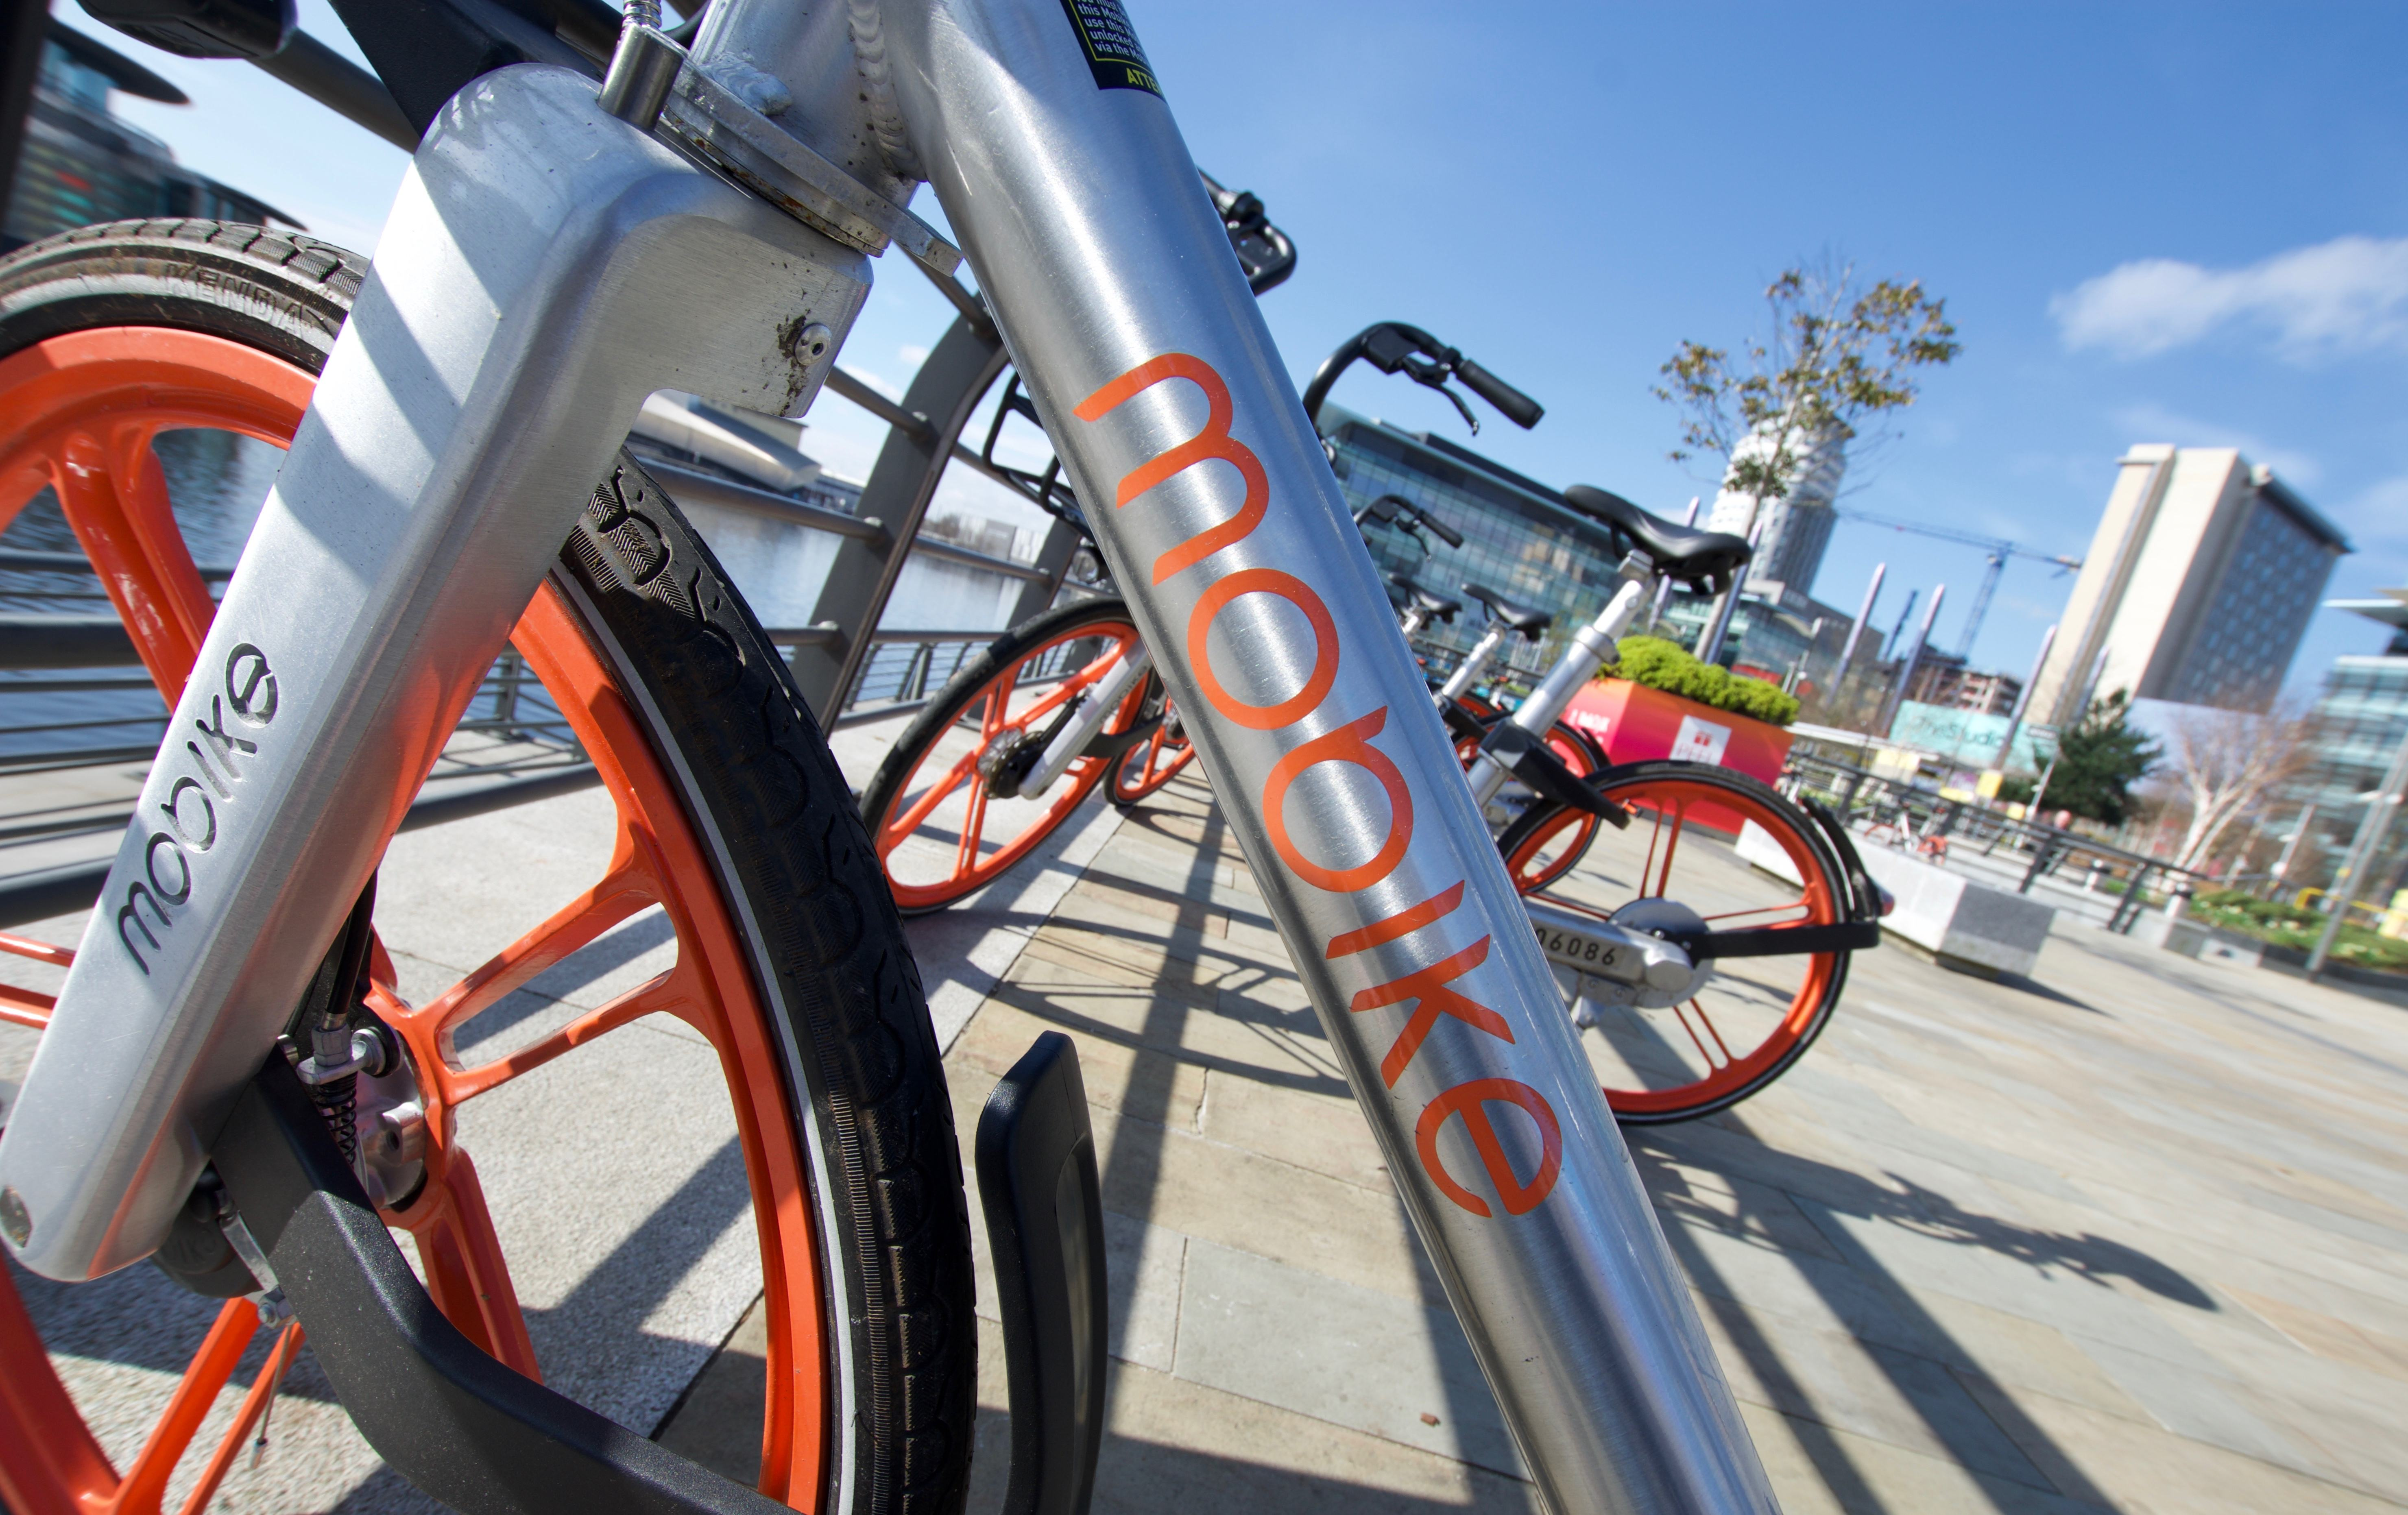 As Ofo shuts down outside China, Mobike eyes 'stable' 2019